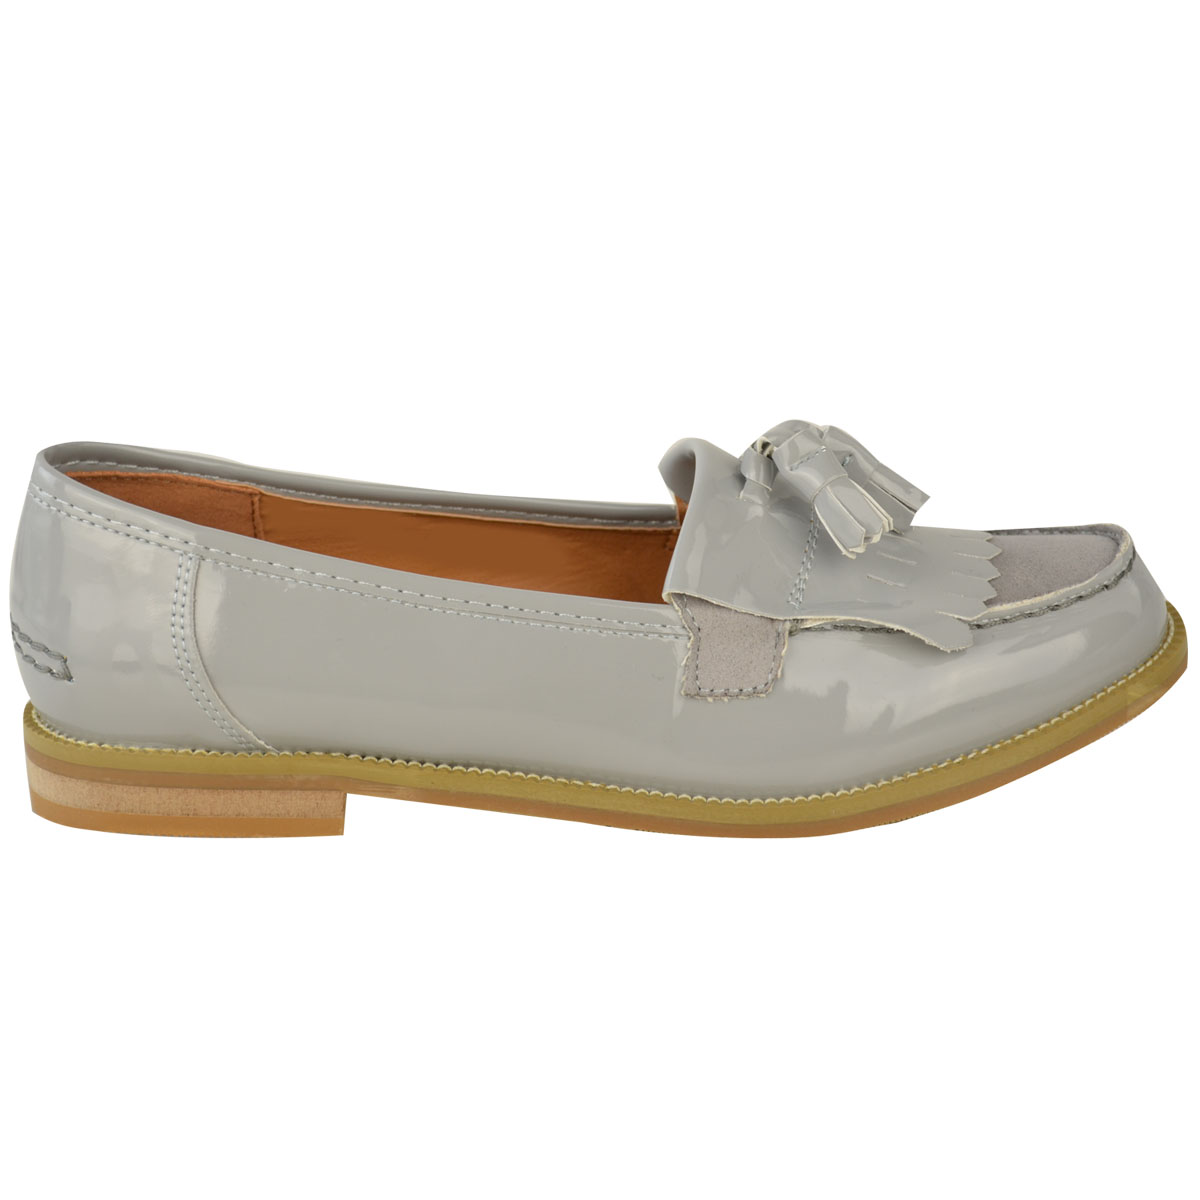 Womens-Ladies-Loafers-Brogues-Pumps-Casual-School-Office-Comfy-Work-Flats-Size thumbnail 19